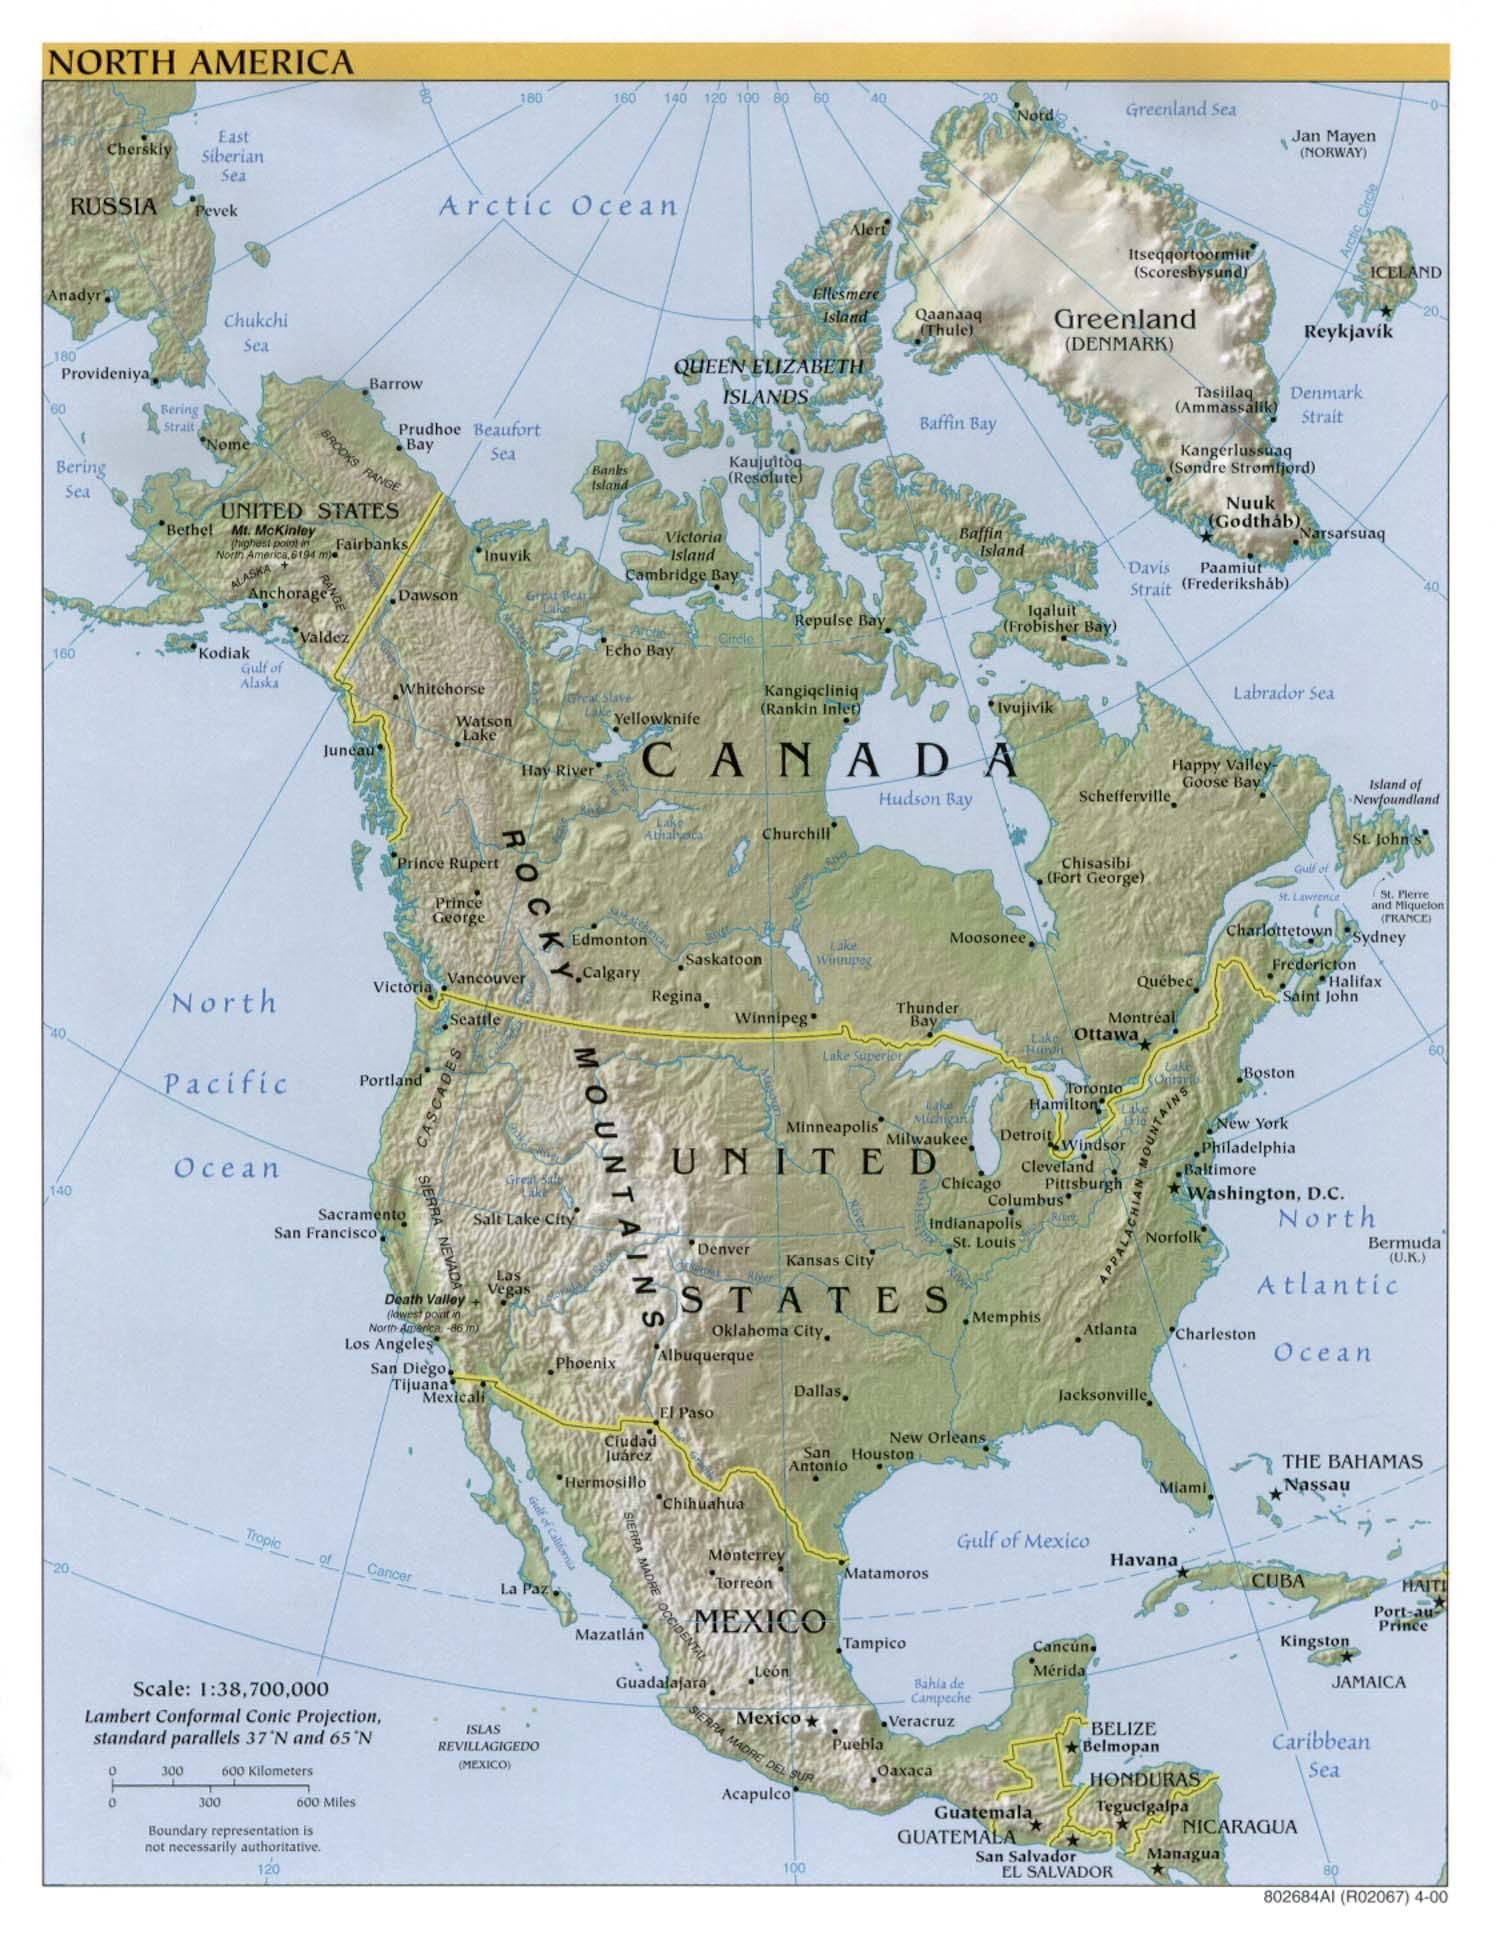 Americas Maps Perry Castaneda Map Collection Ut Library Online - Mt-mckinley-on-us-map